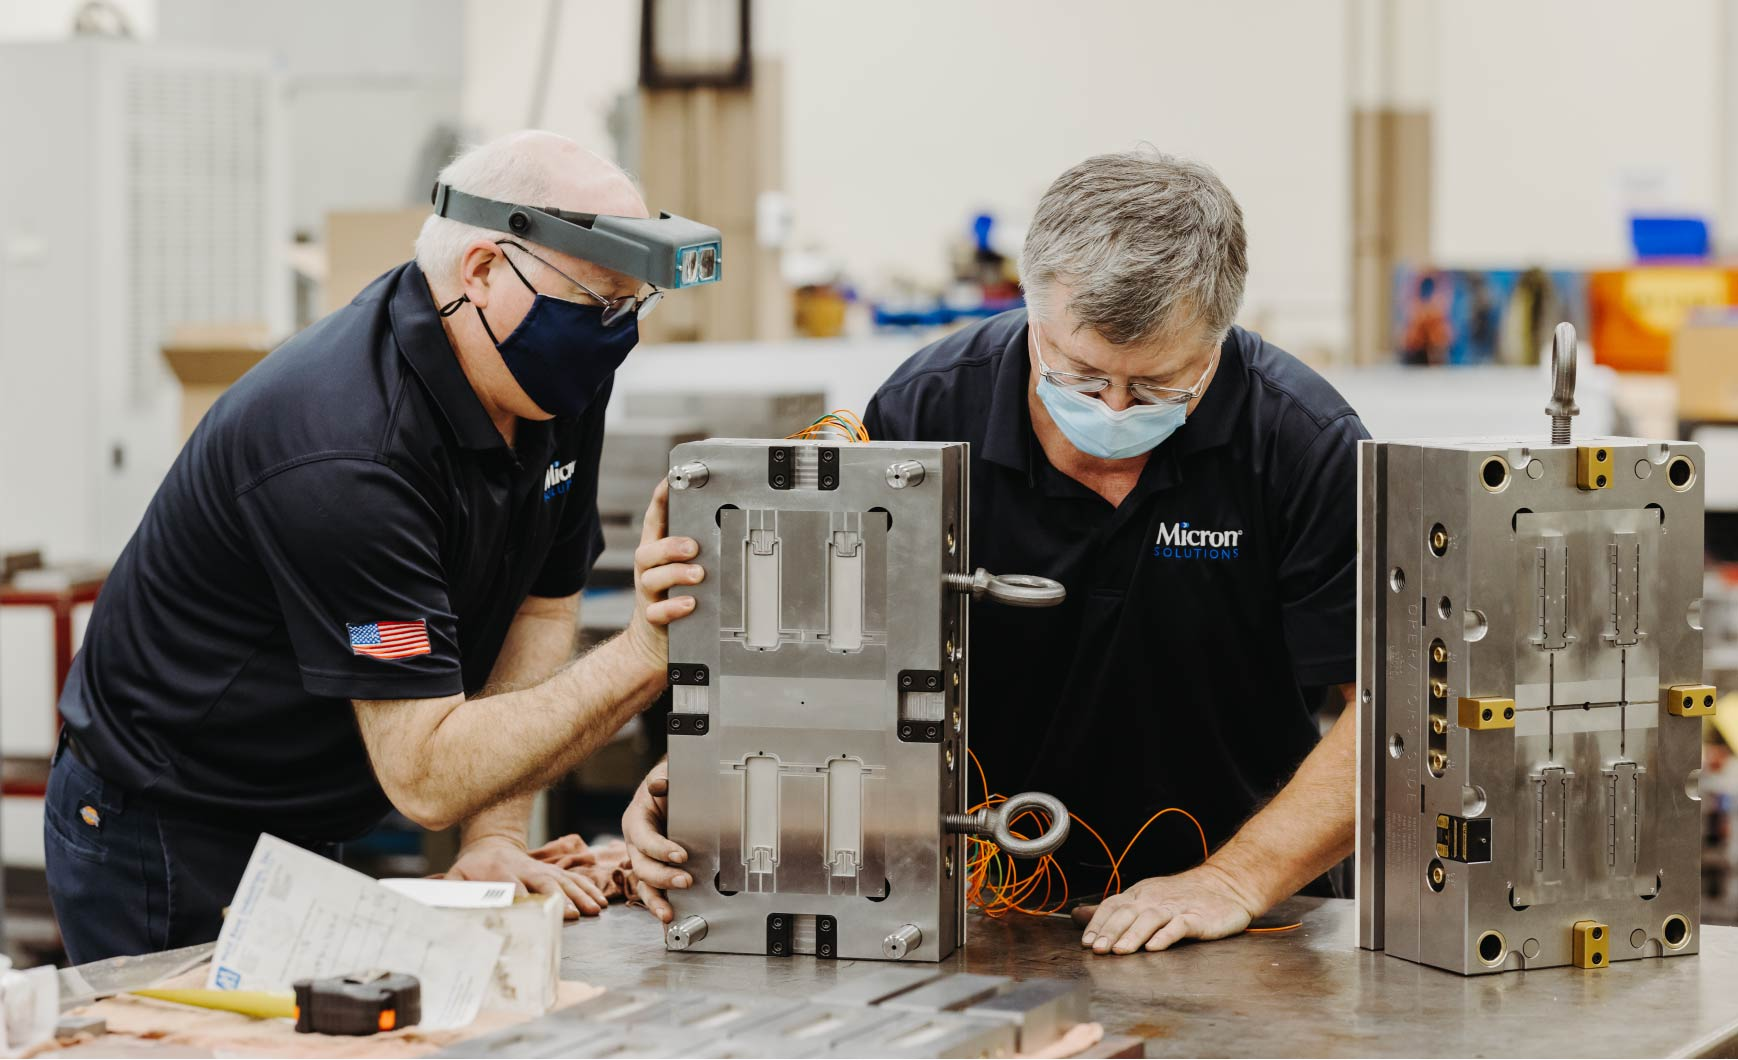 Two men wearing masks work on a mold